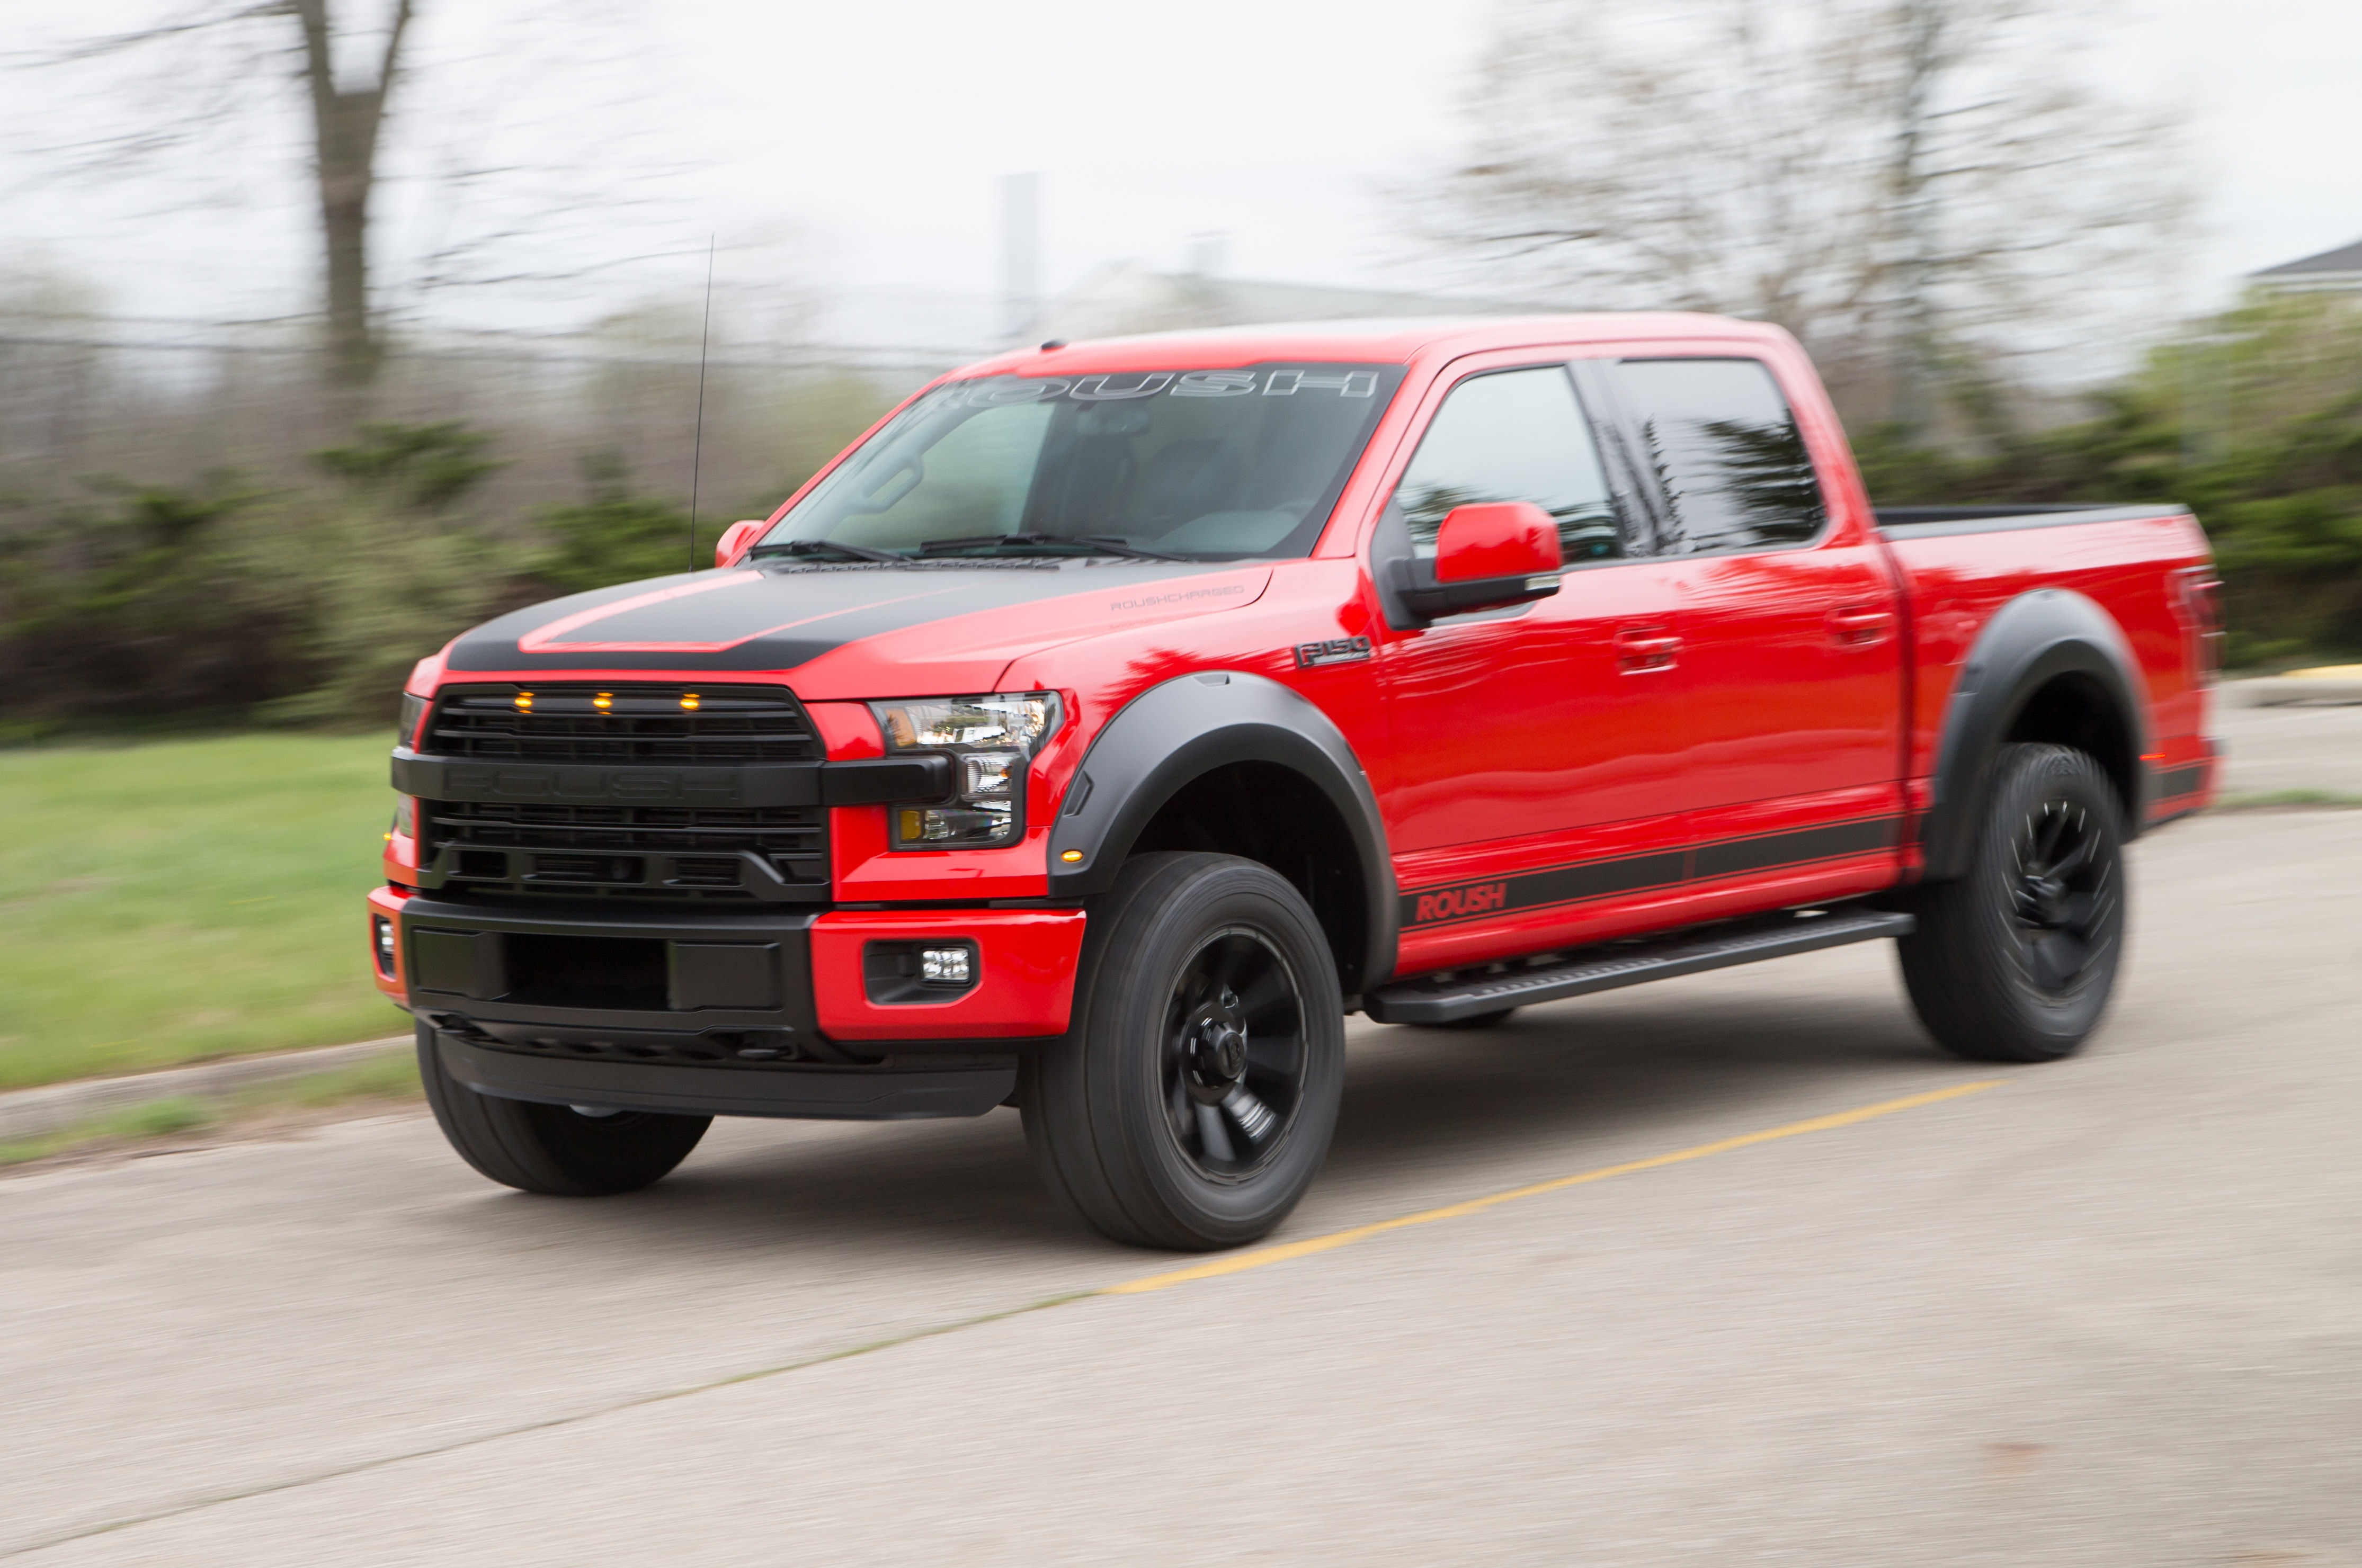 2016 Roush Ford F-150 SC Review